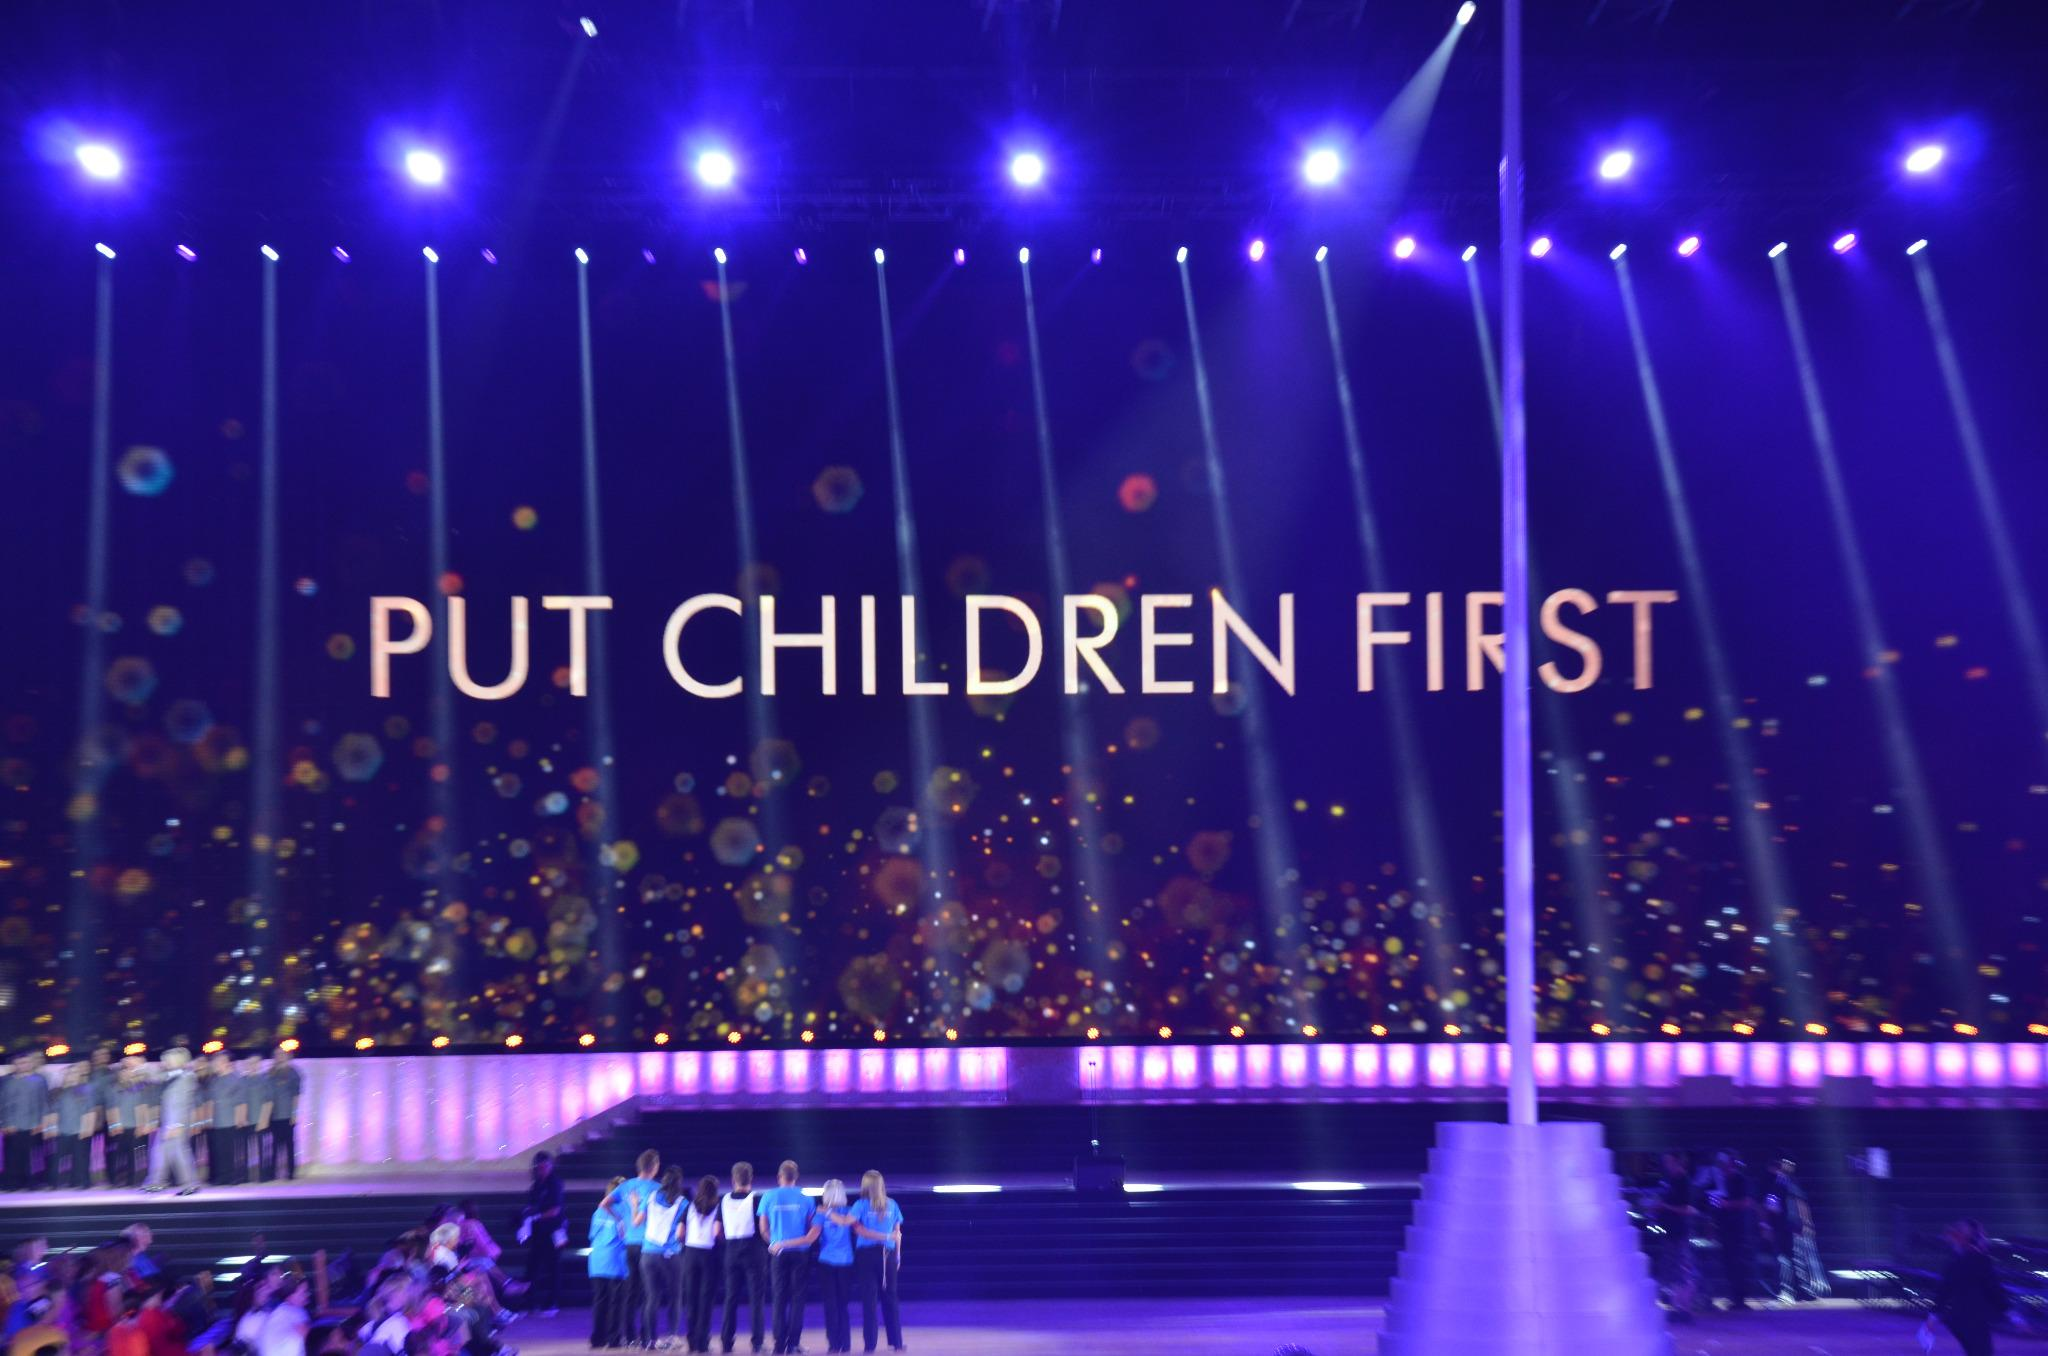 RT @UNICEF_uk: Now is the moment to #PutChildrenFirst. Please text FIRST to 70333 & give £5 to make history around the Commonwealth http://…